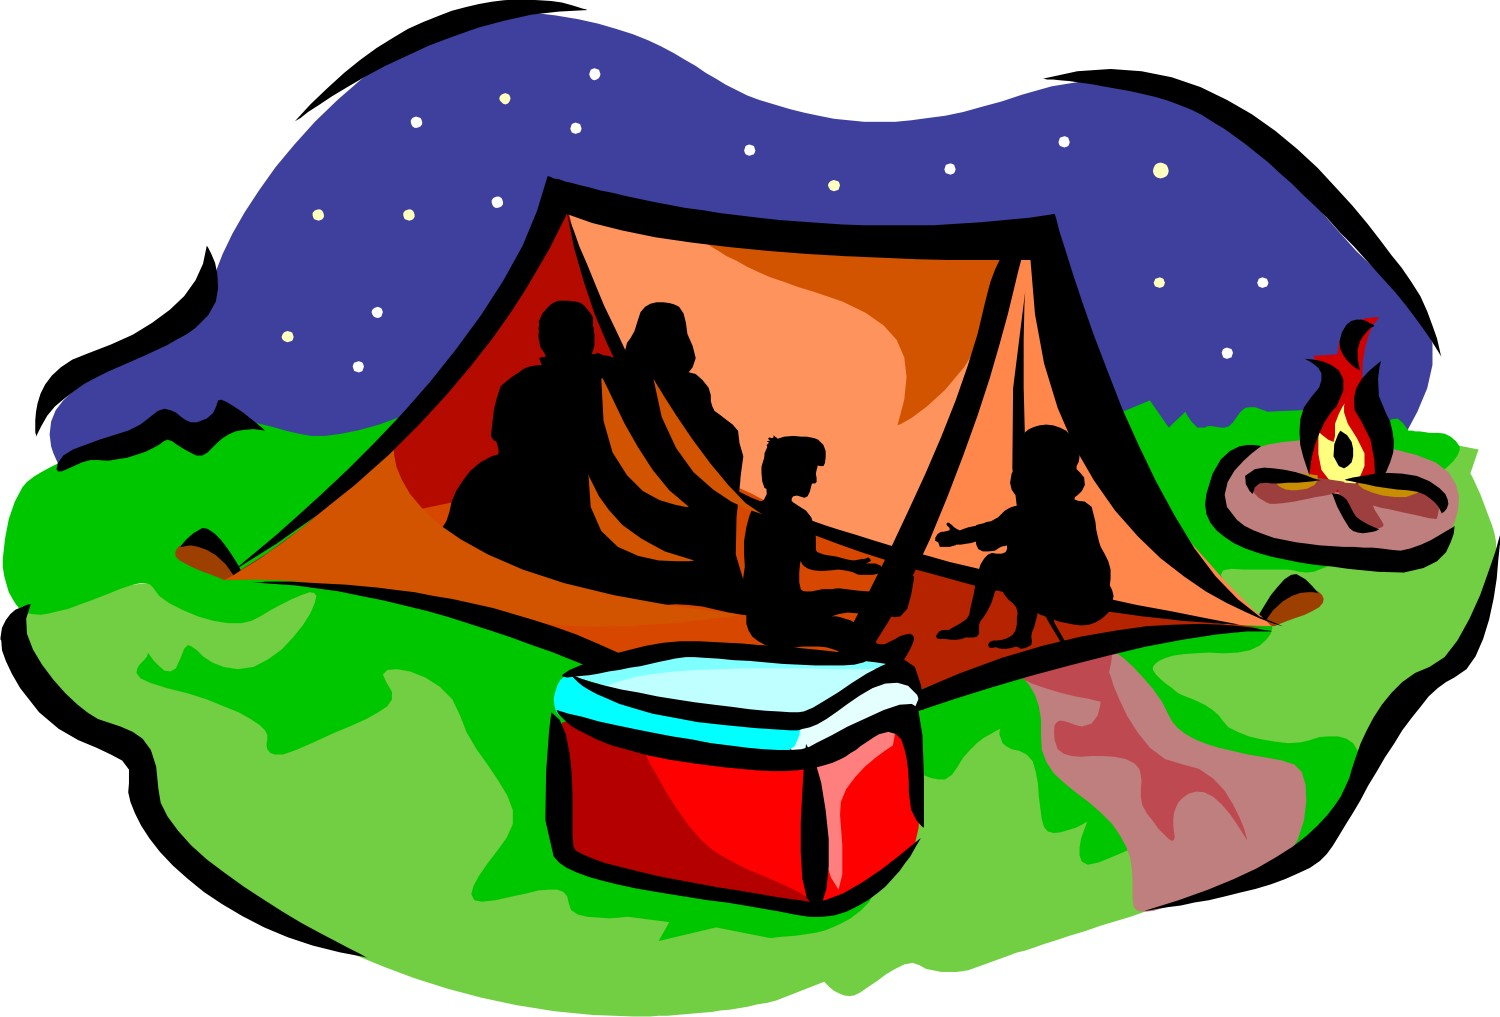 Clipart Sleeping Bag Camping Clipart Best